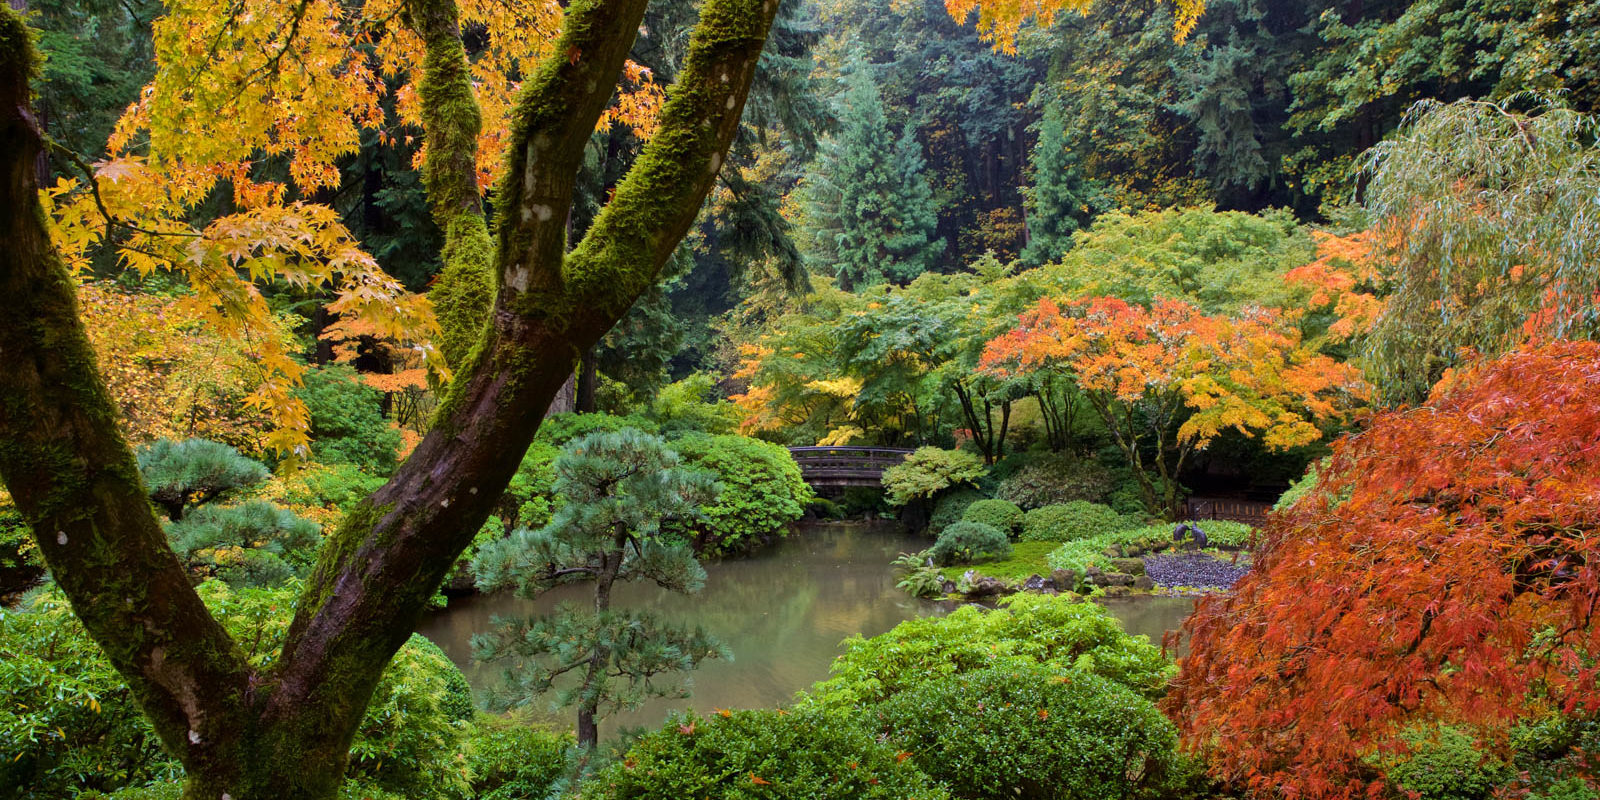 Photo credit: Portland Japanese Garden